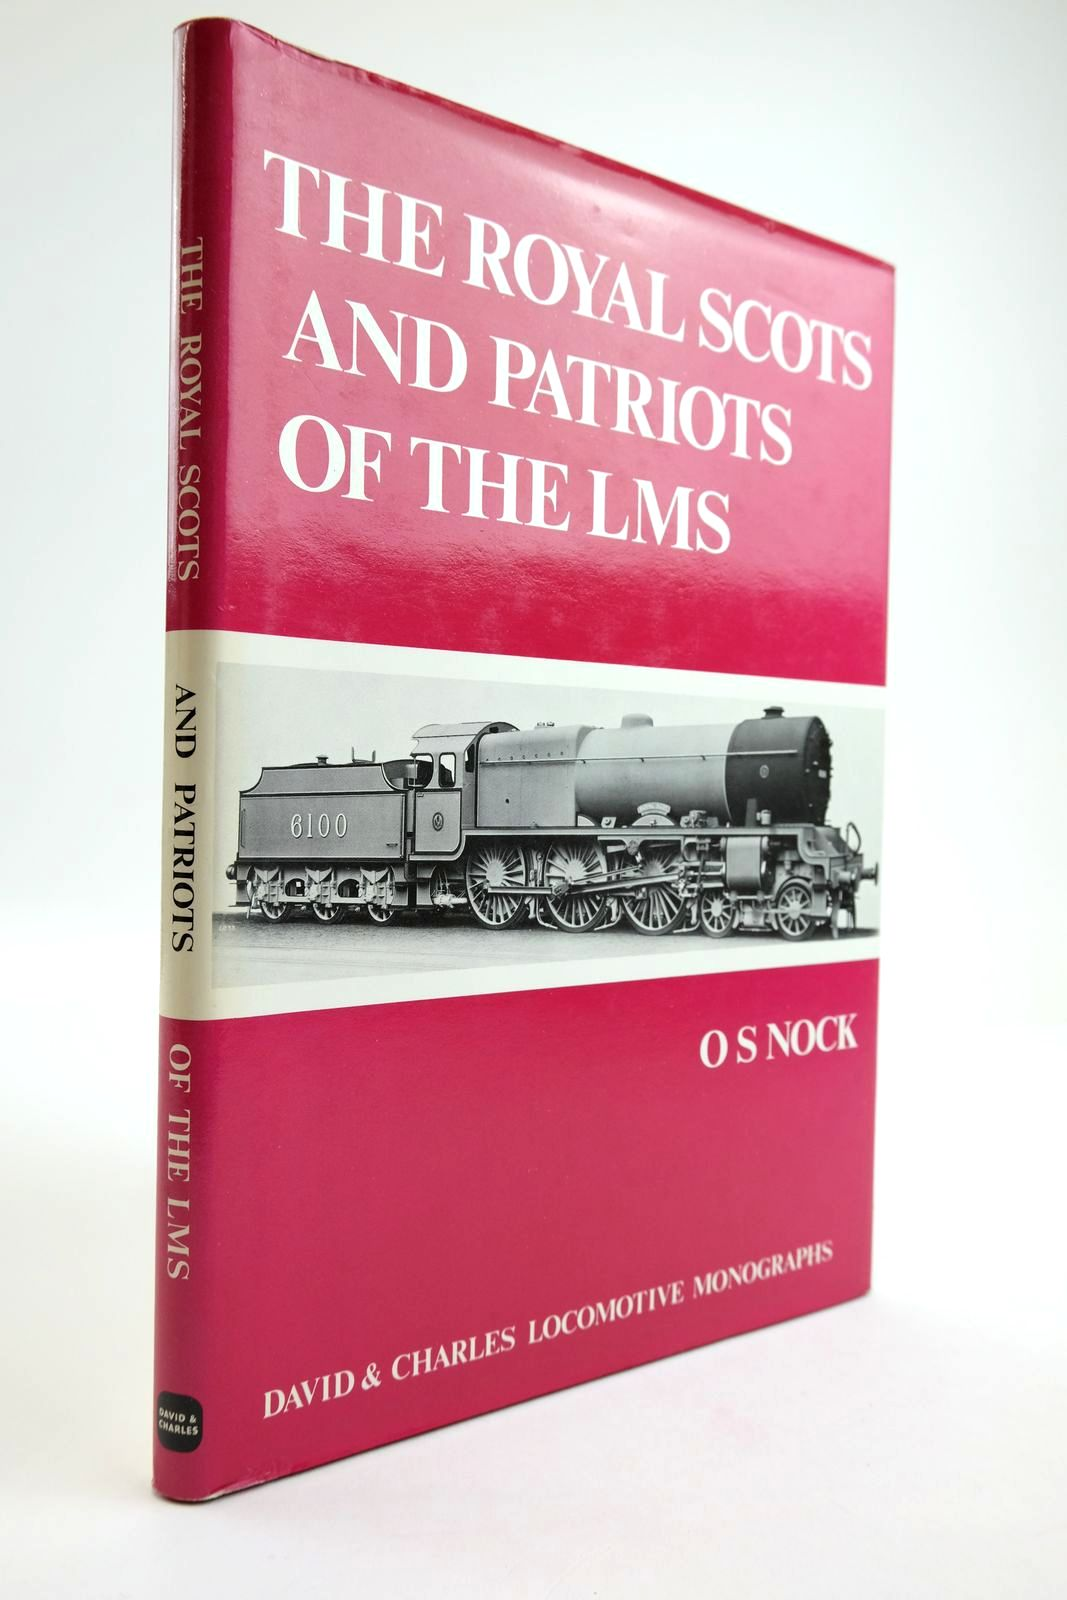 Photo of THE ROYAL SCOTS AND PATRIOTS OF THE LMS- Stock Number: 2133620